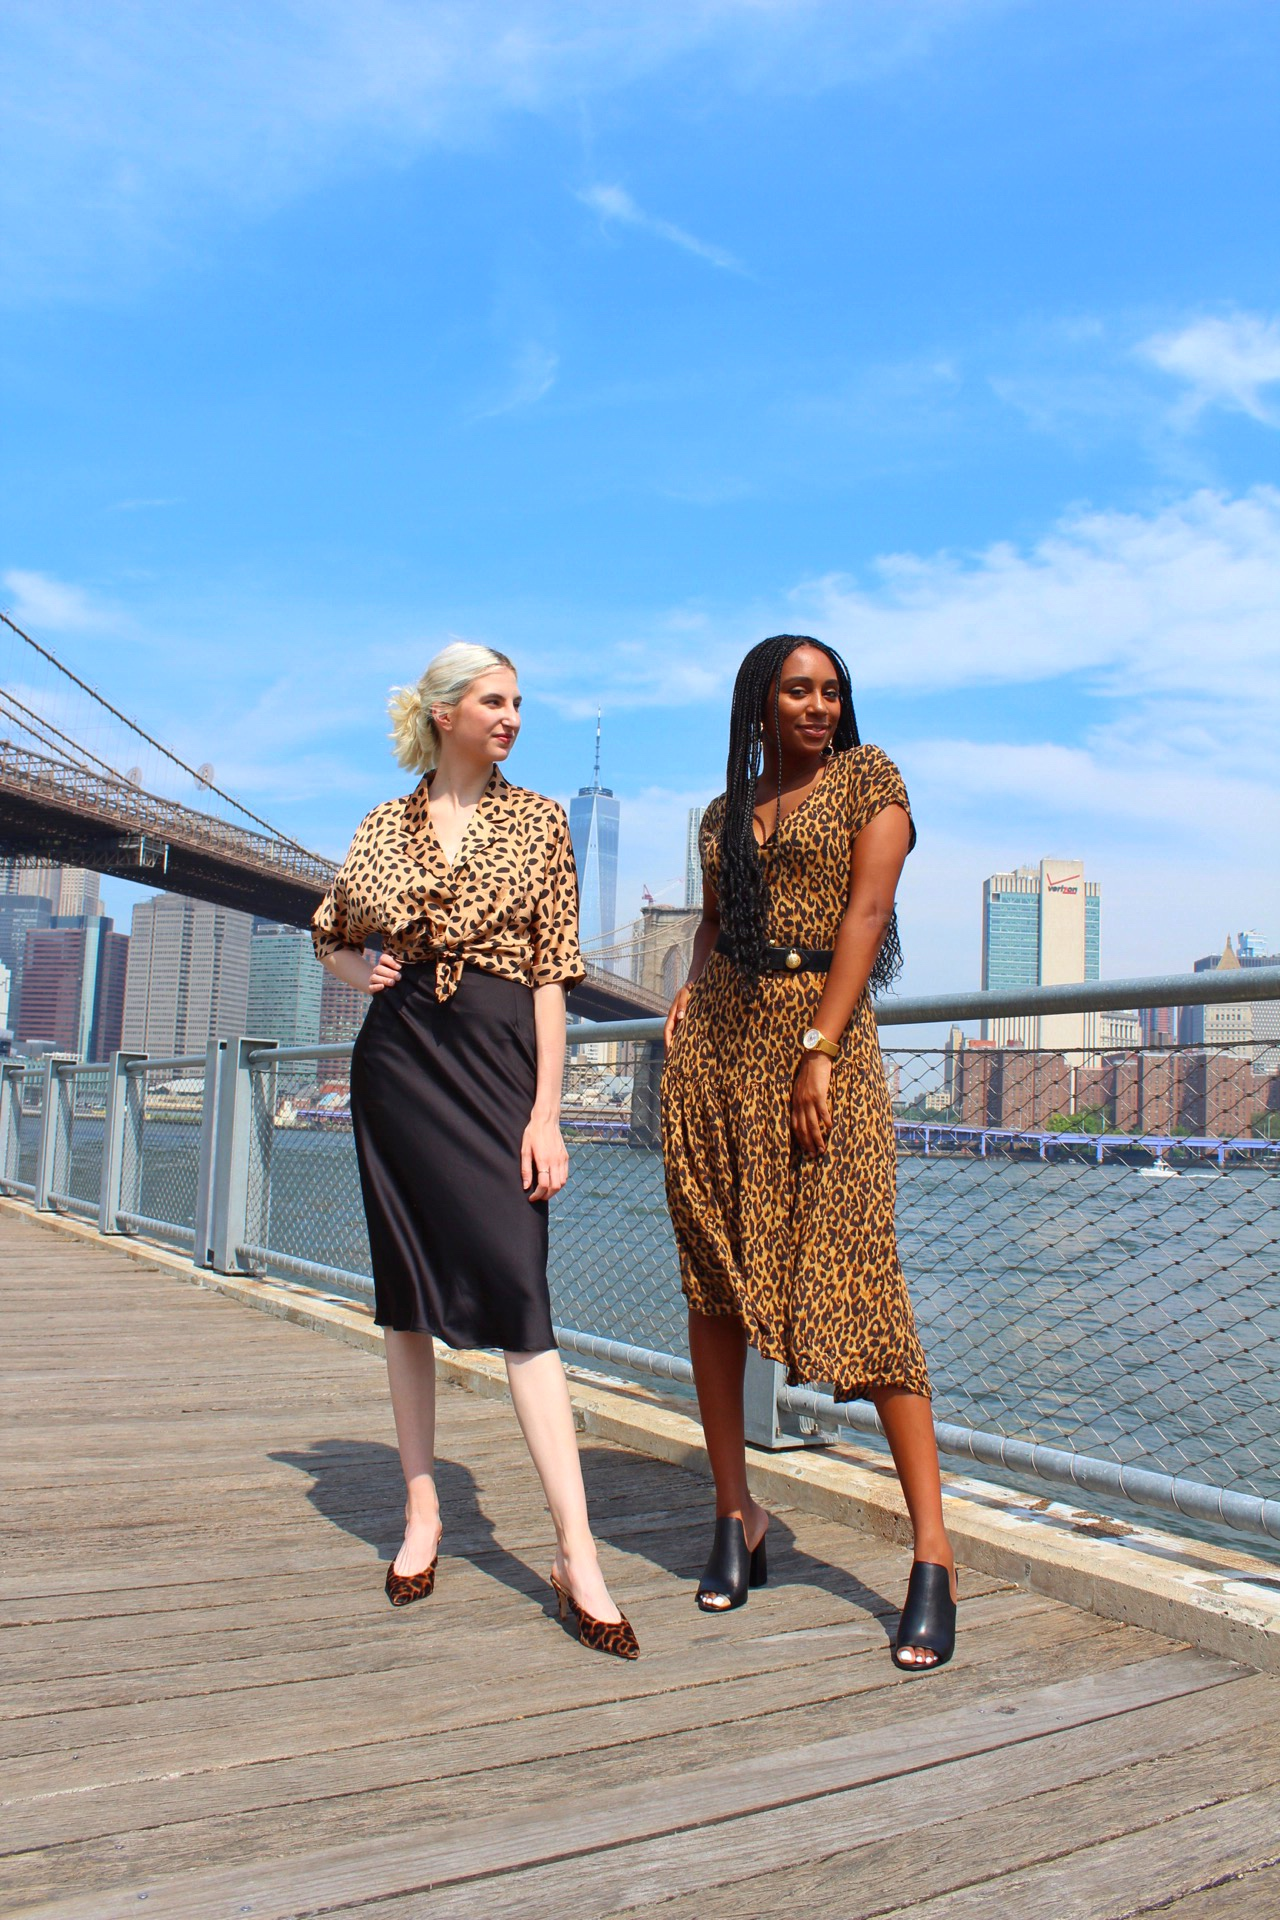 Her Style: Leopard Print with Kiana Brooks, how to style leopard print two ways, fashion interview with kiana brooks by Audra Koch, Southern New Yorker